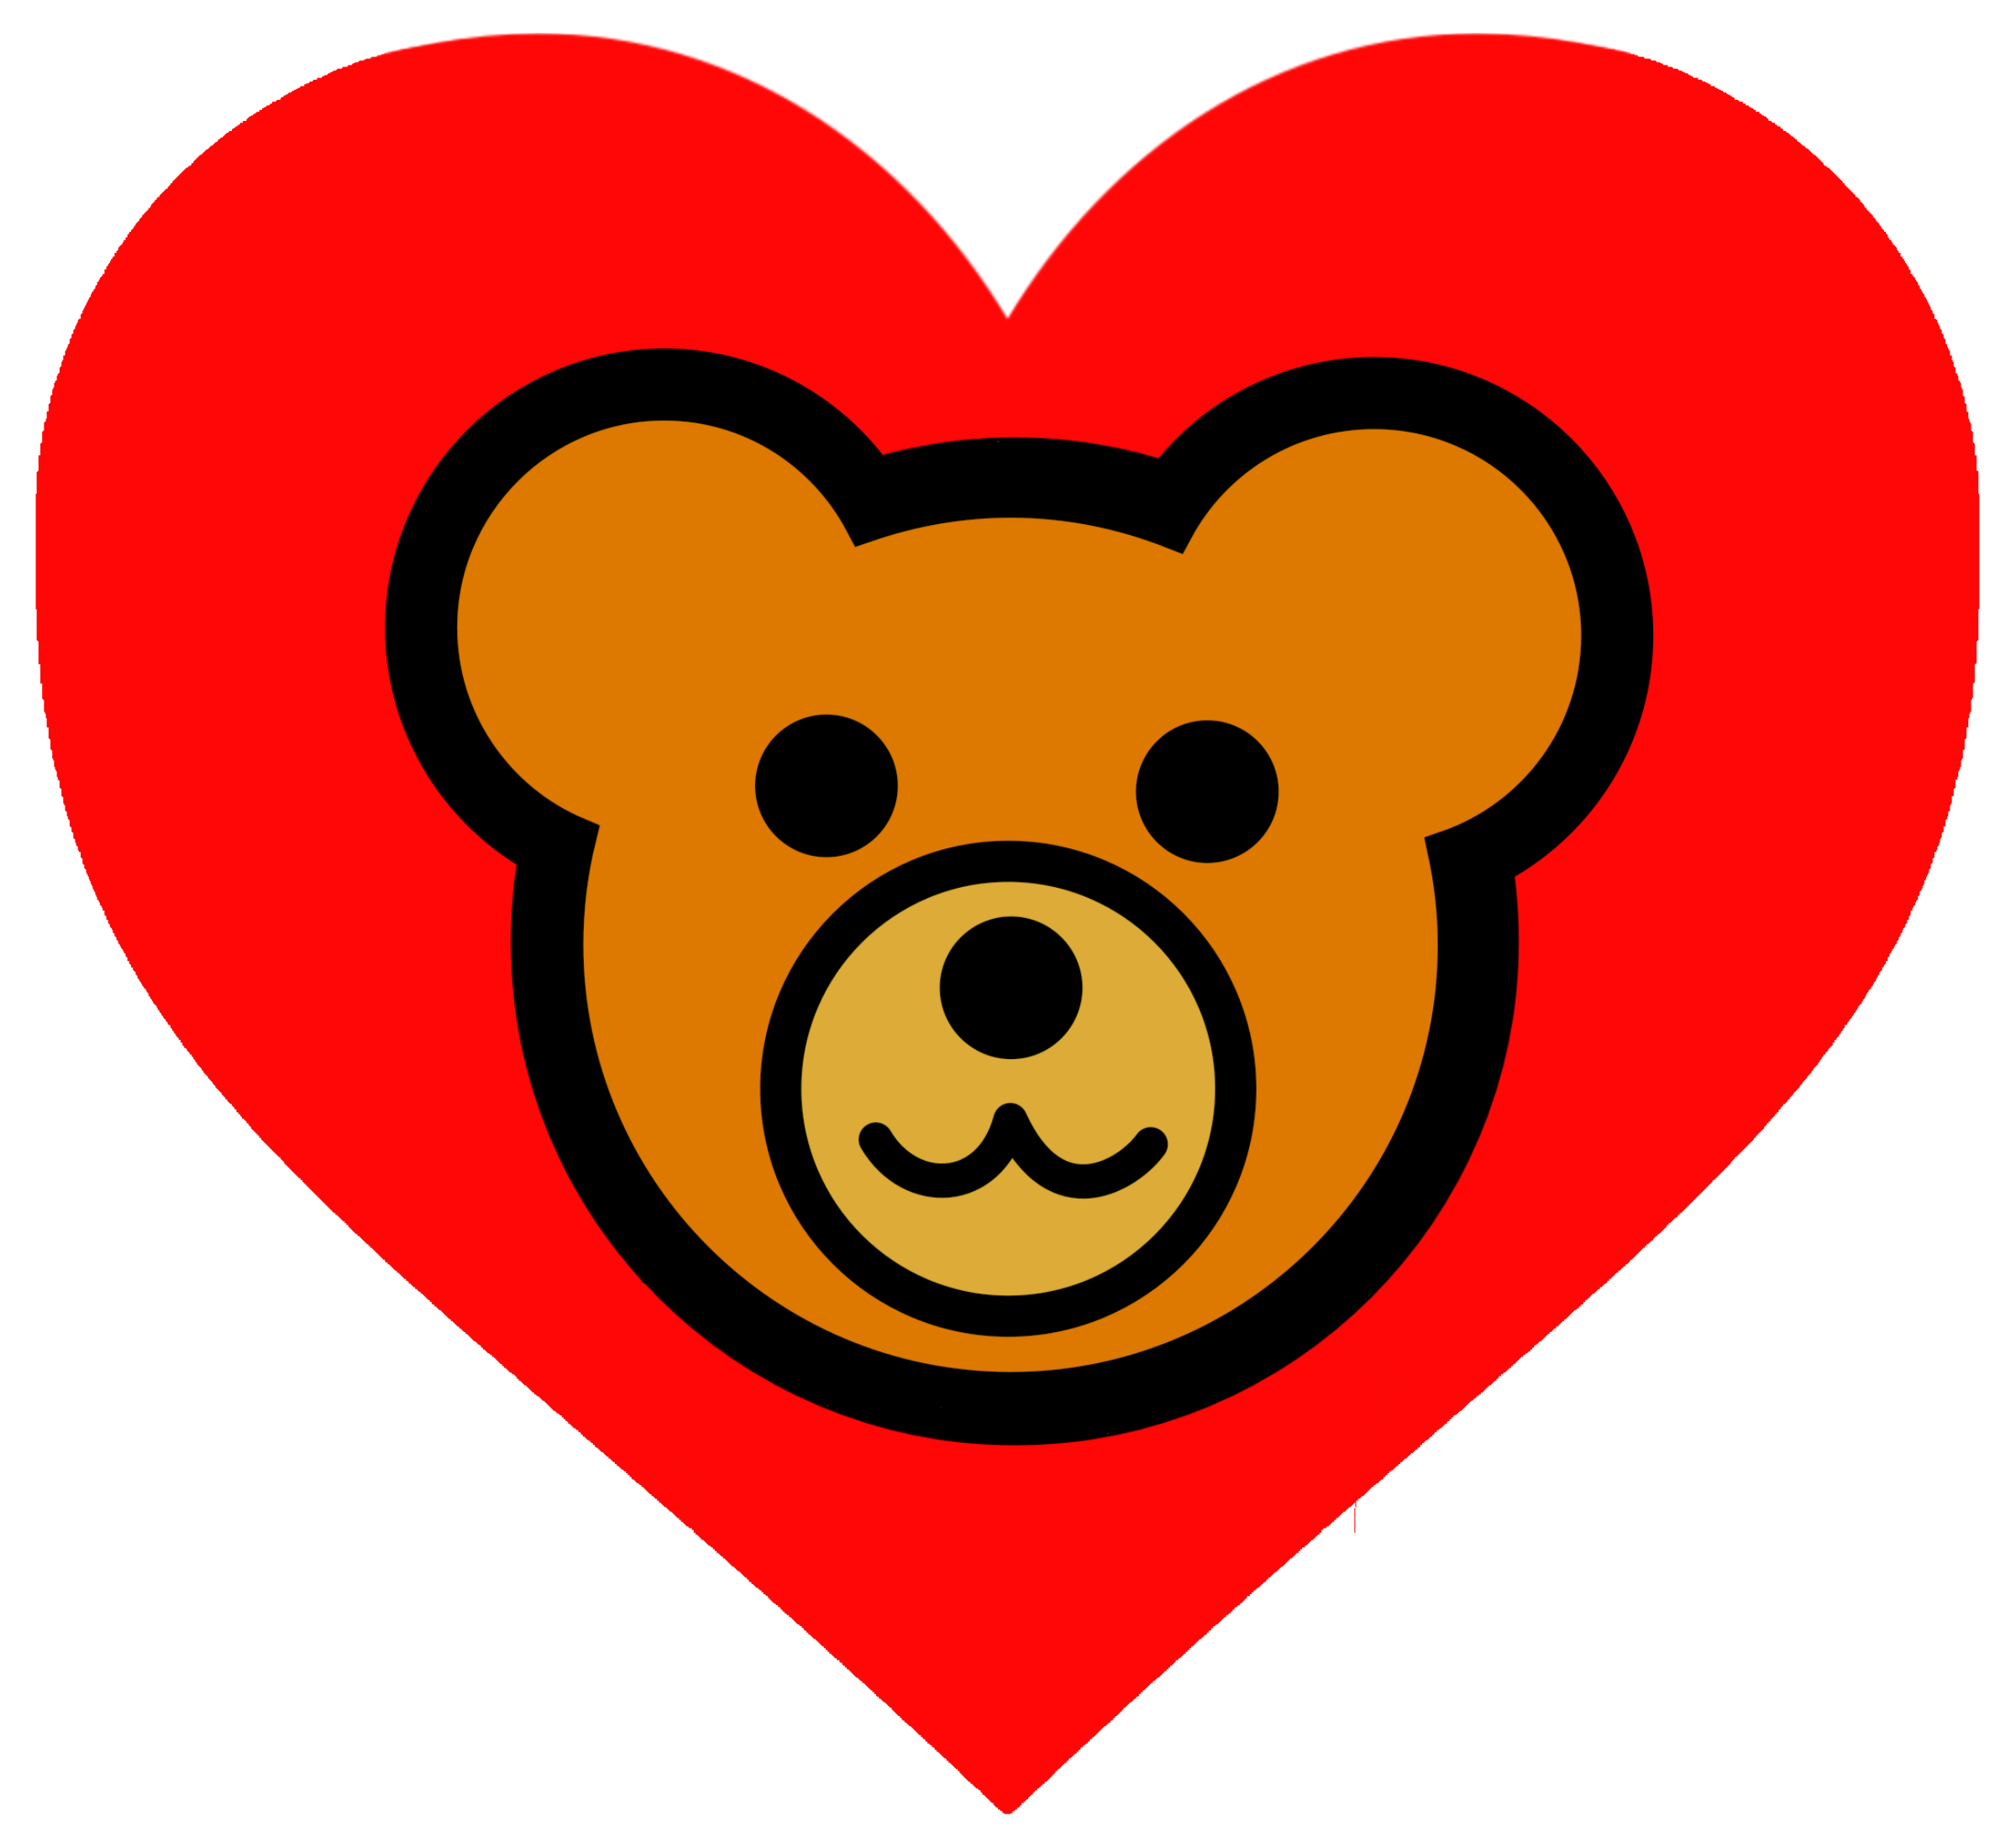 Clipart teddy bear with heart clipart royalty free download Clipart - Teddy Bear Head in Heart v1 Remix clipart royalty free download